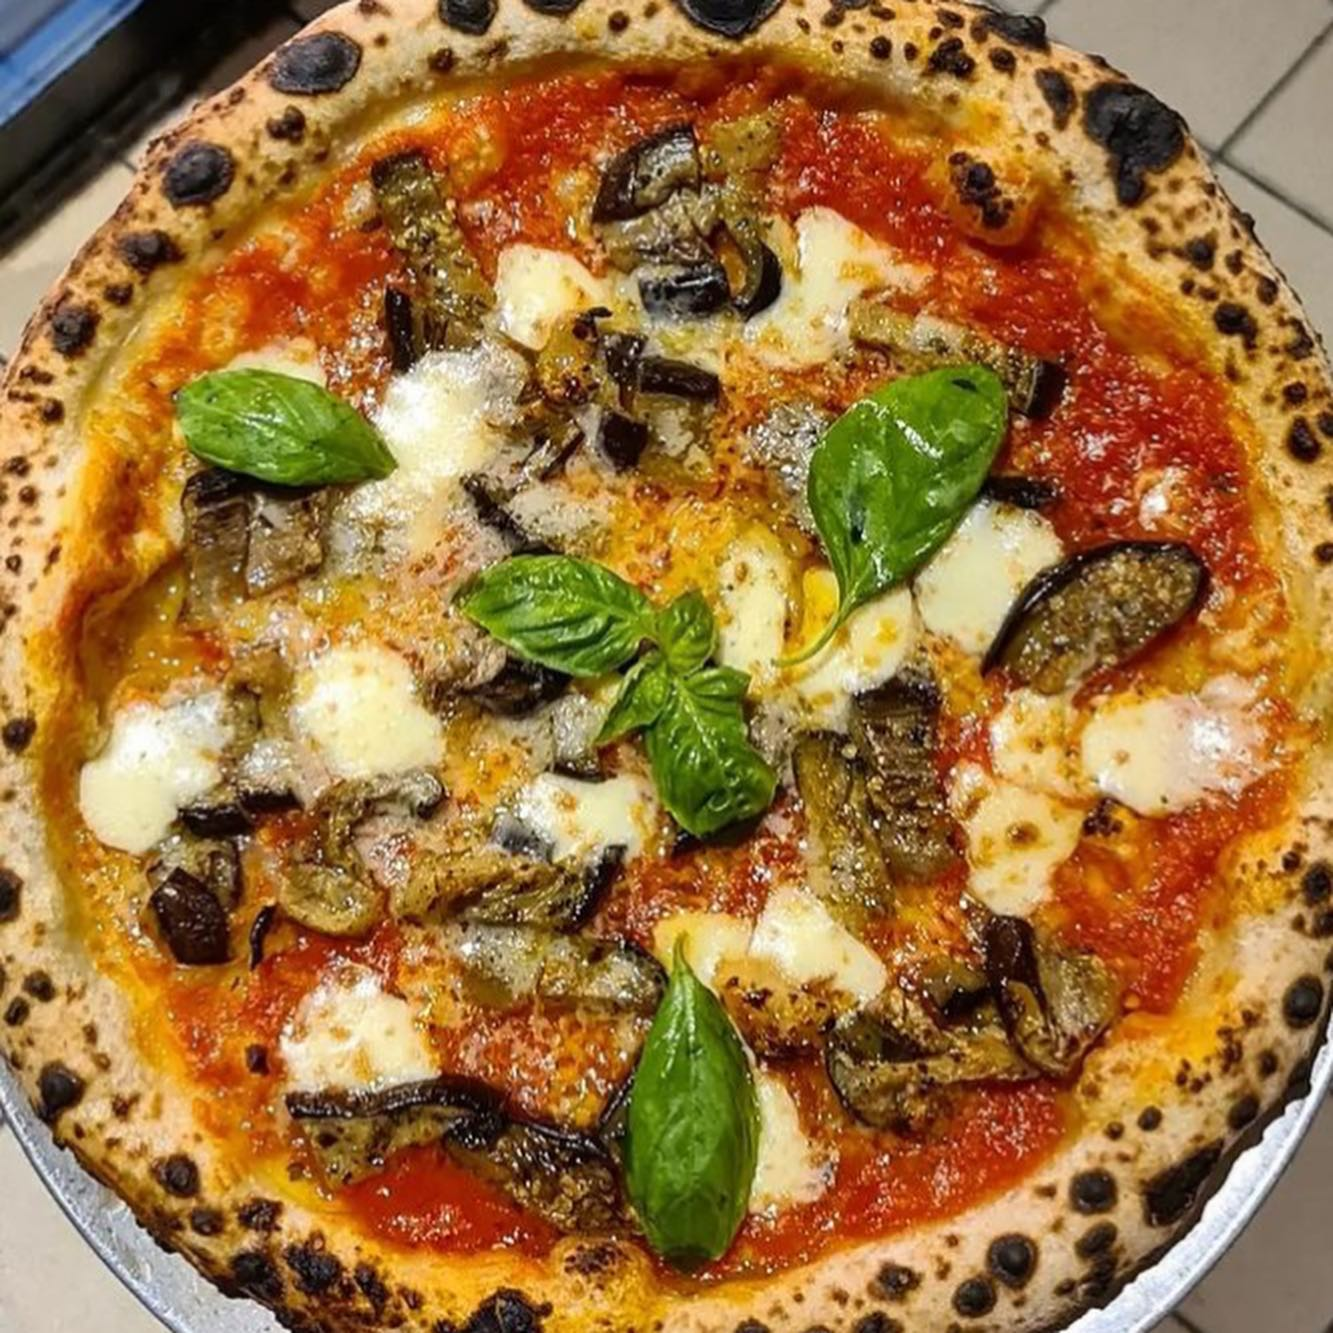 NEW SPECIAL - Melanzane Affumicatta AKA The Mouthful 😝   It's to die for 💔  Smokey and delicious available today!   #TomatoSauce #lepoardprint #hackneyrestaurants #hackneyspecial #aubergine #smokedgarlic #wellstreetpizza #instapizza #instafood